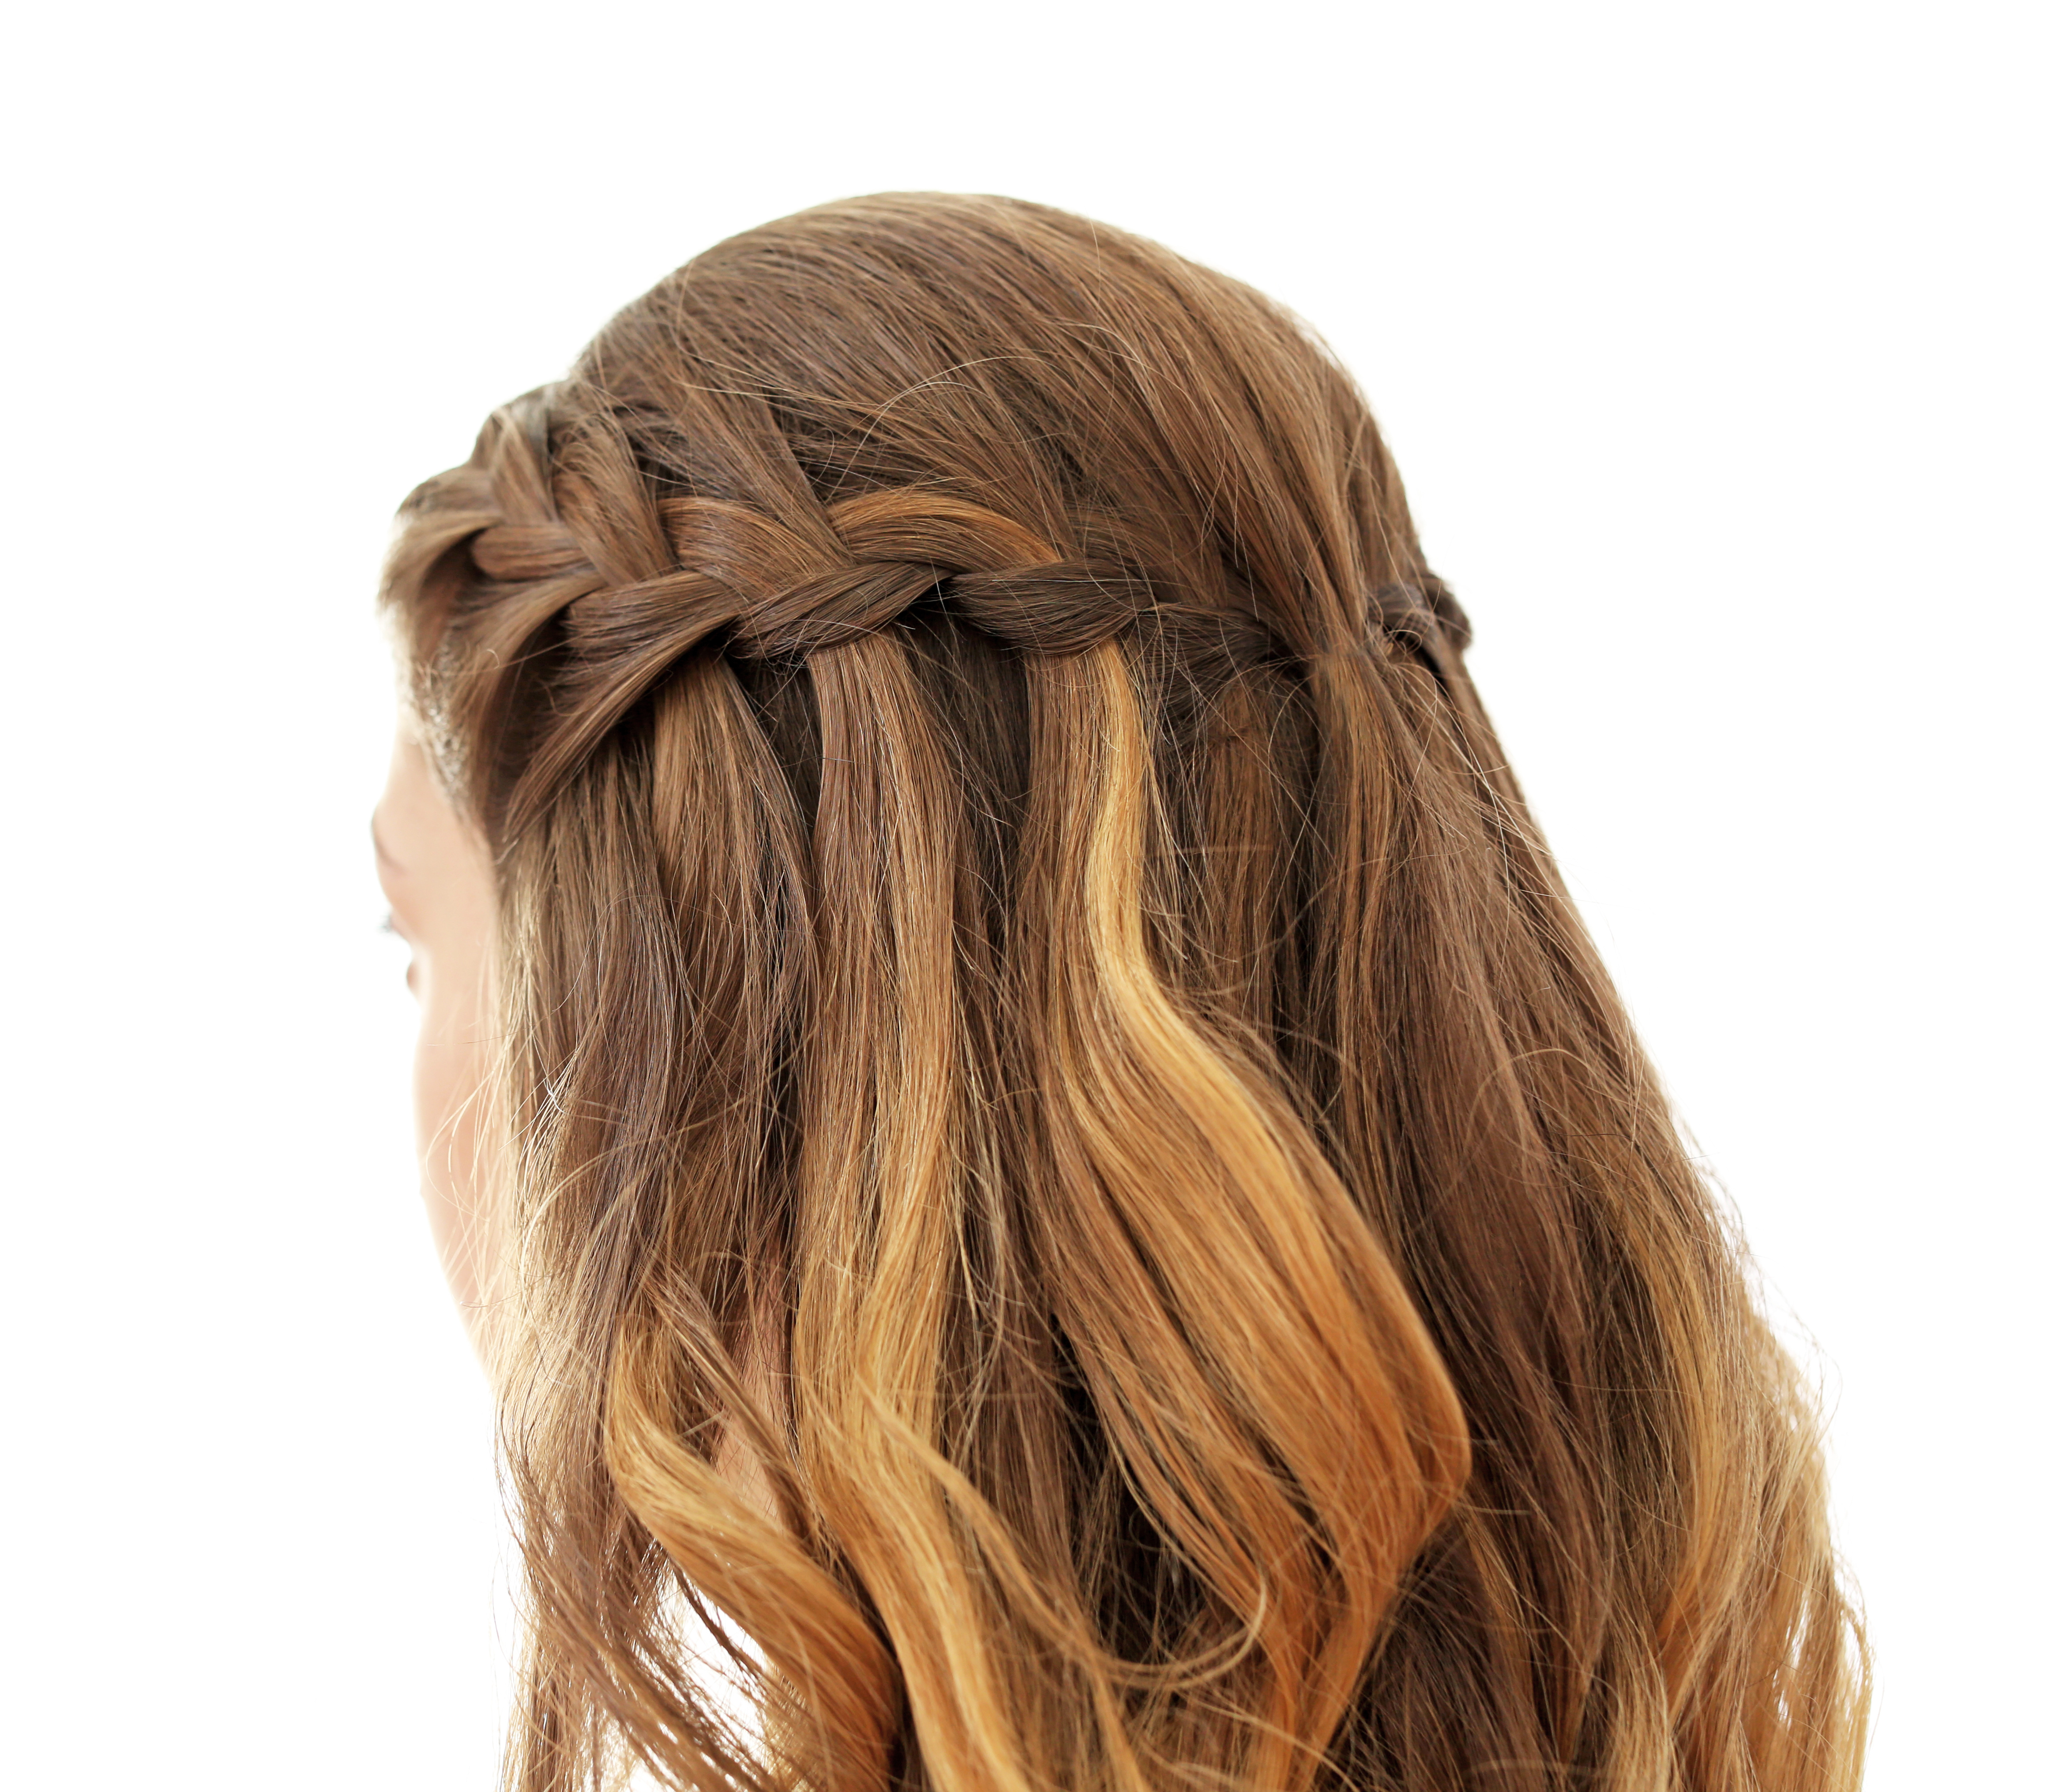 Young woman with beautiful hairstyle on white background